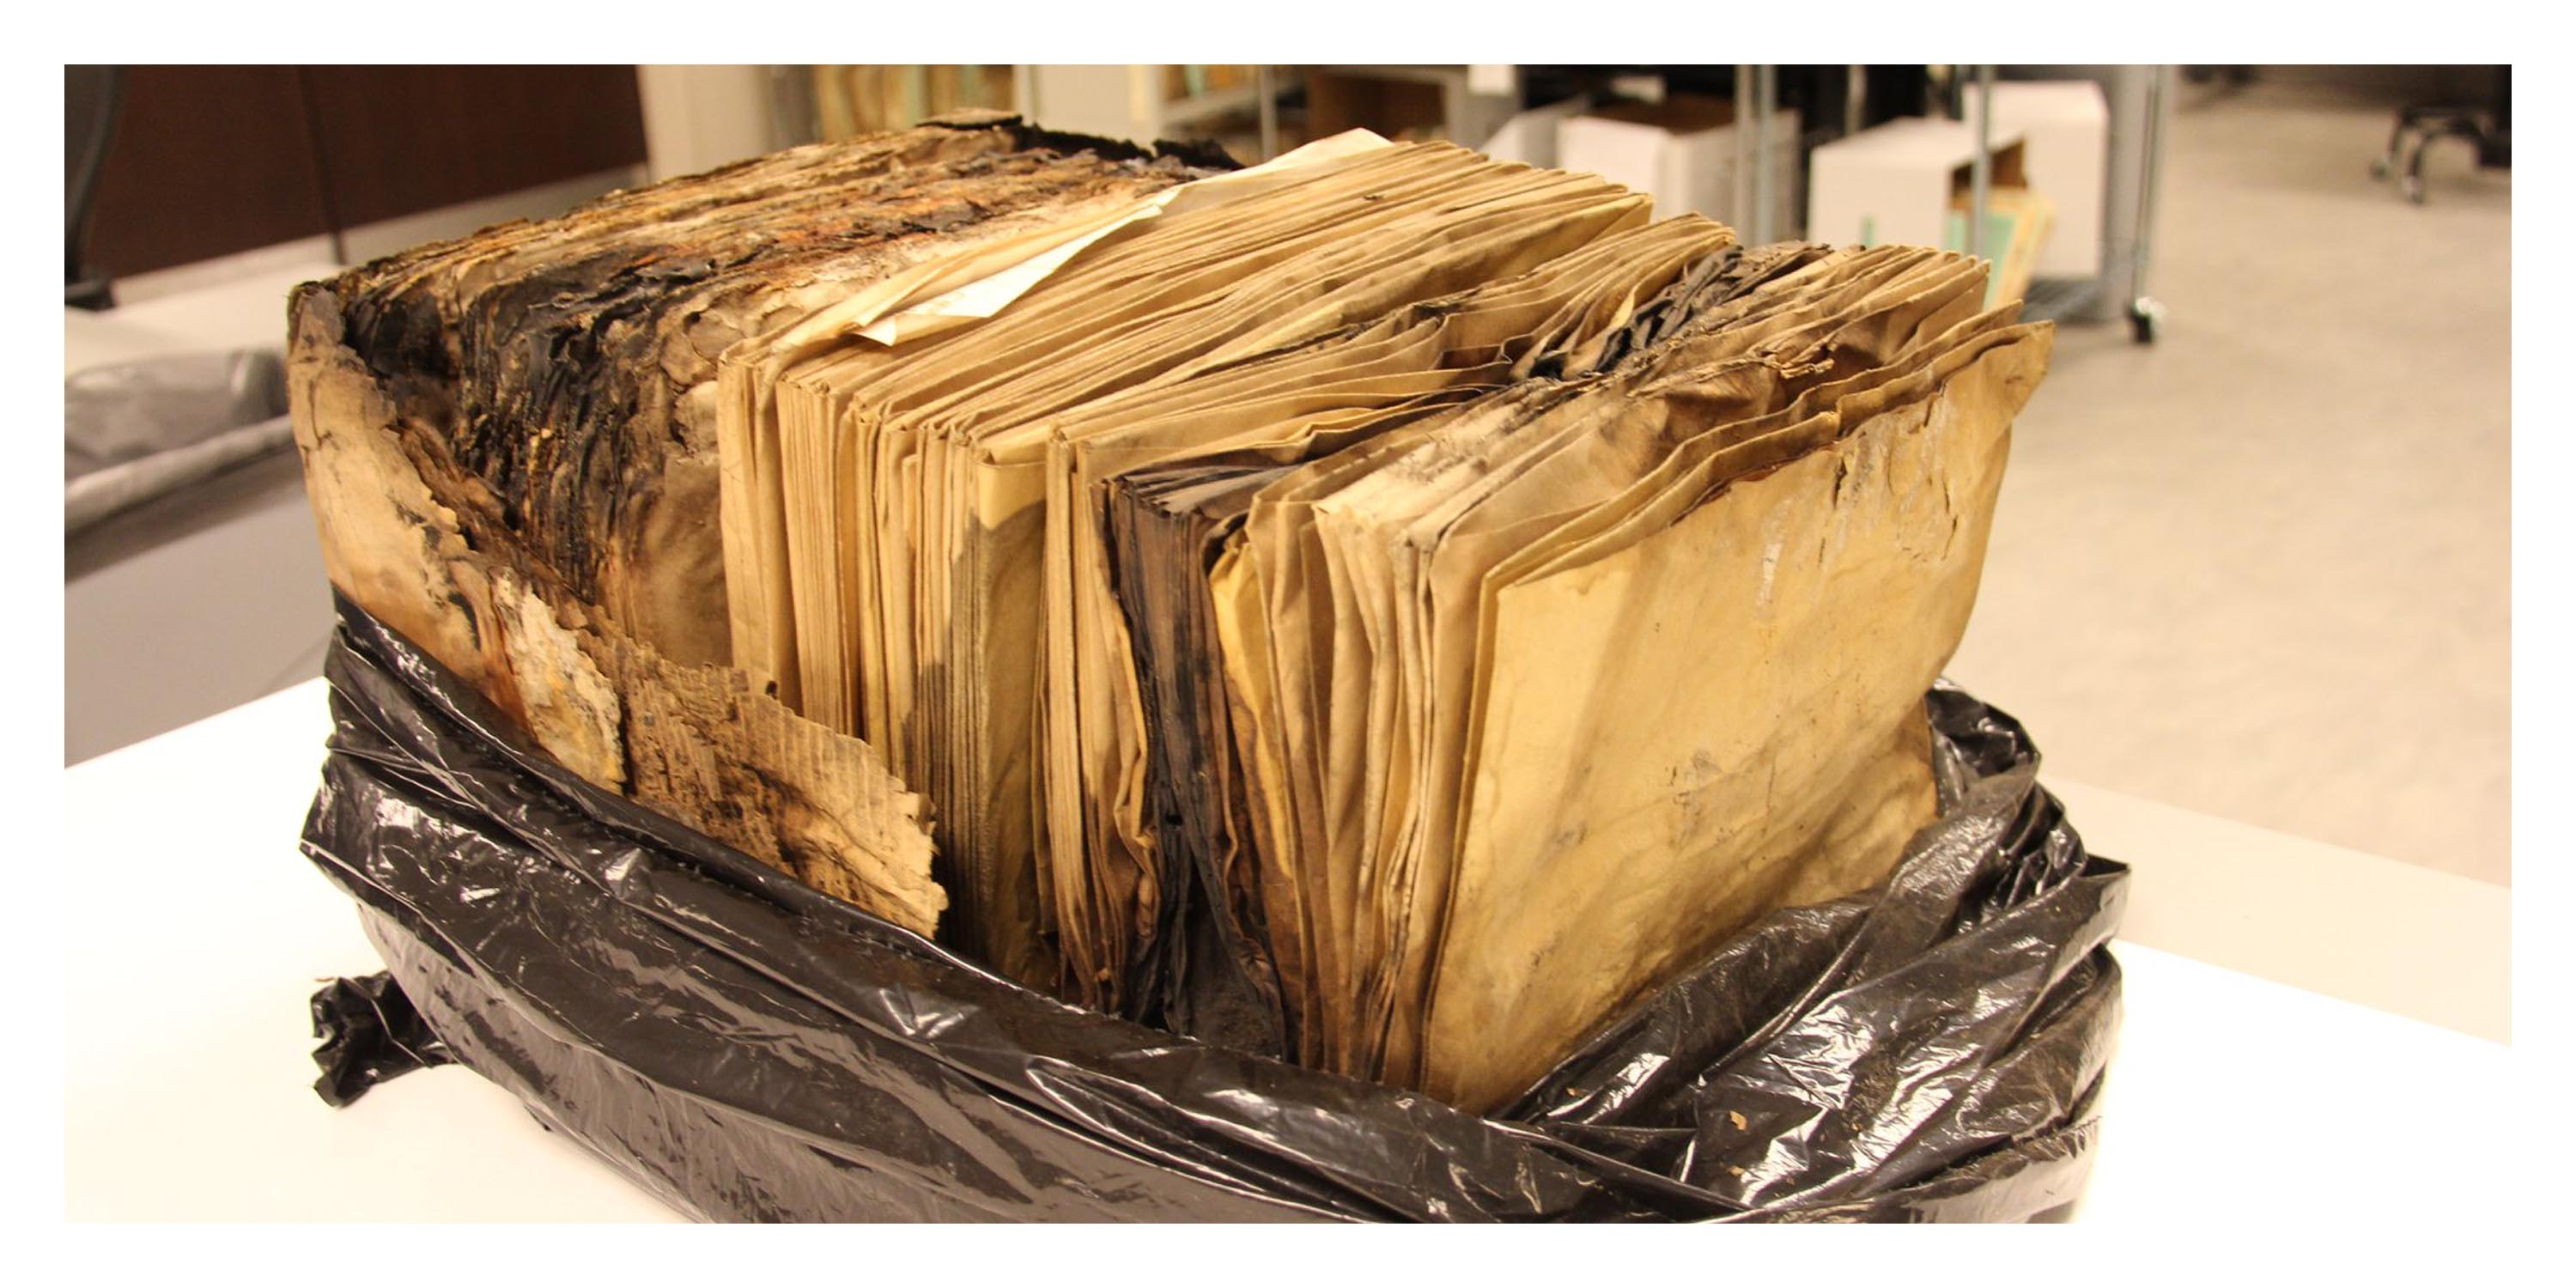 Archives Recalls Fire That Claimed Millions Of Military